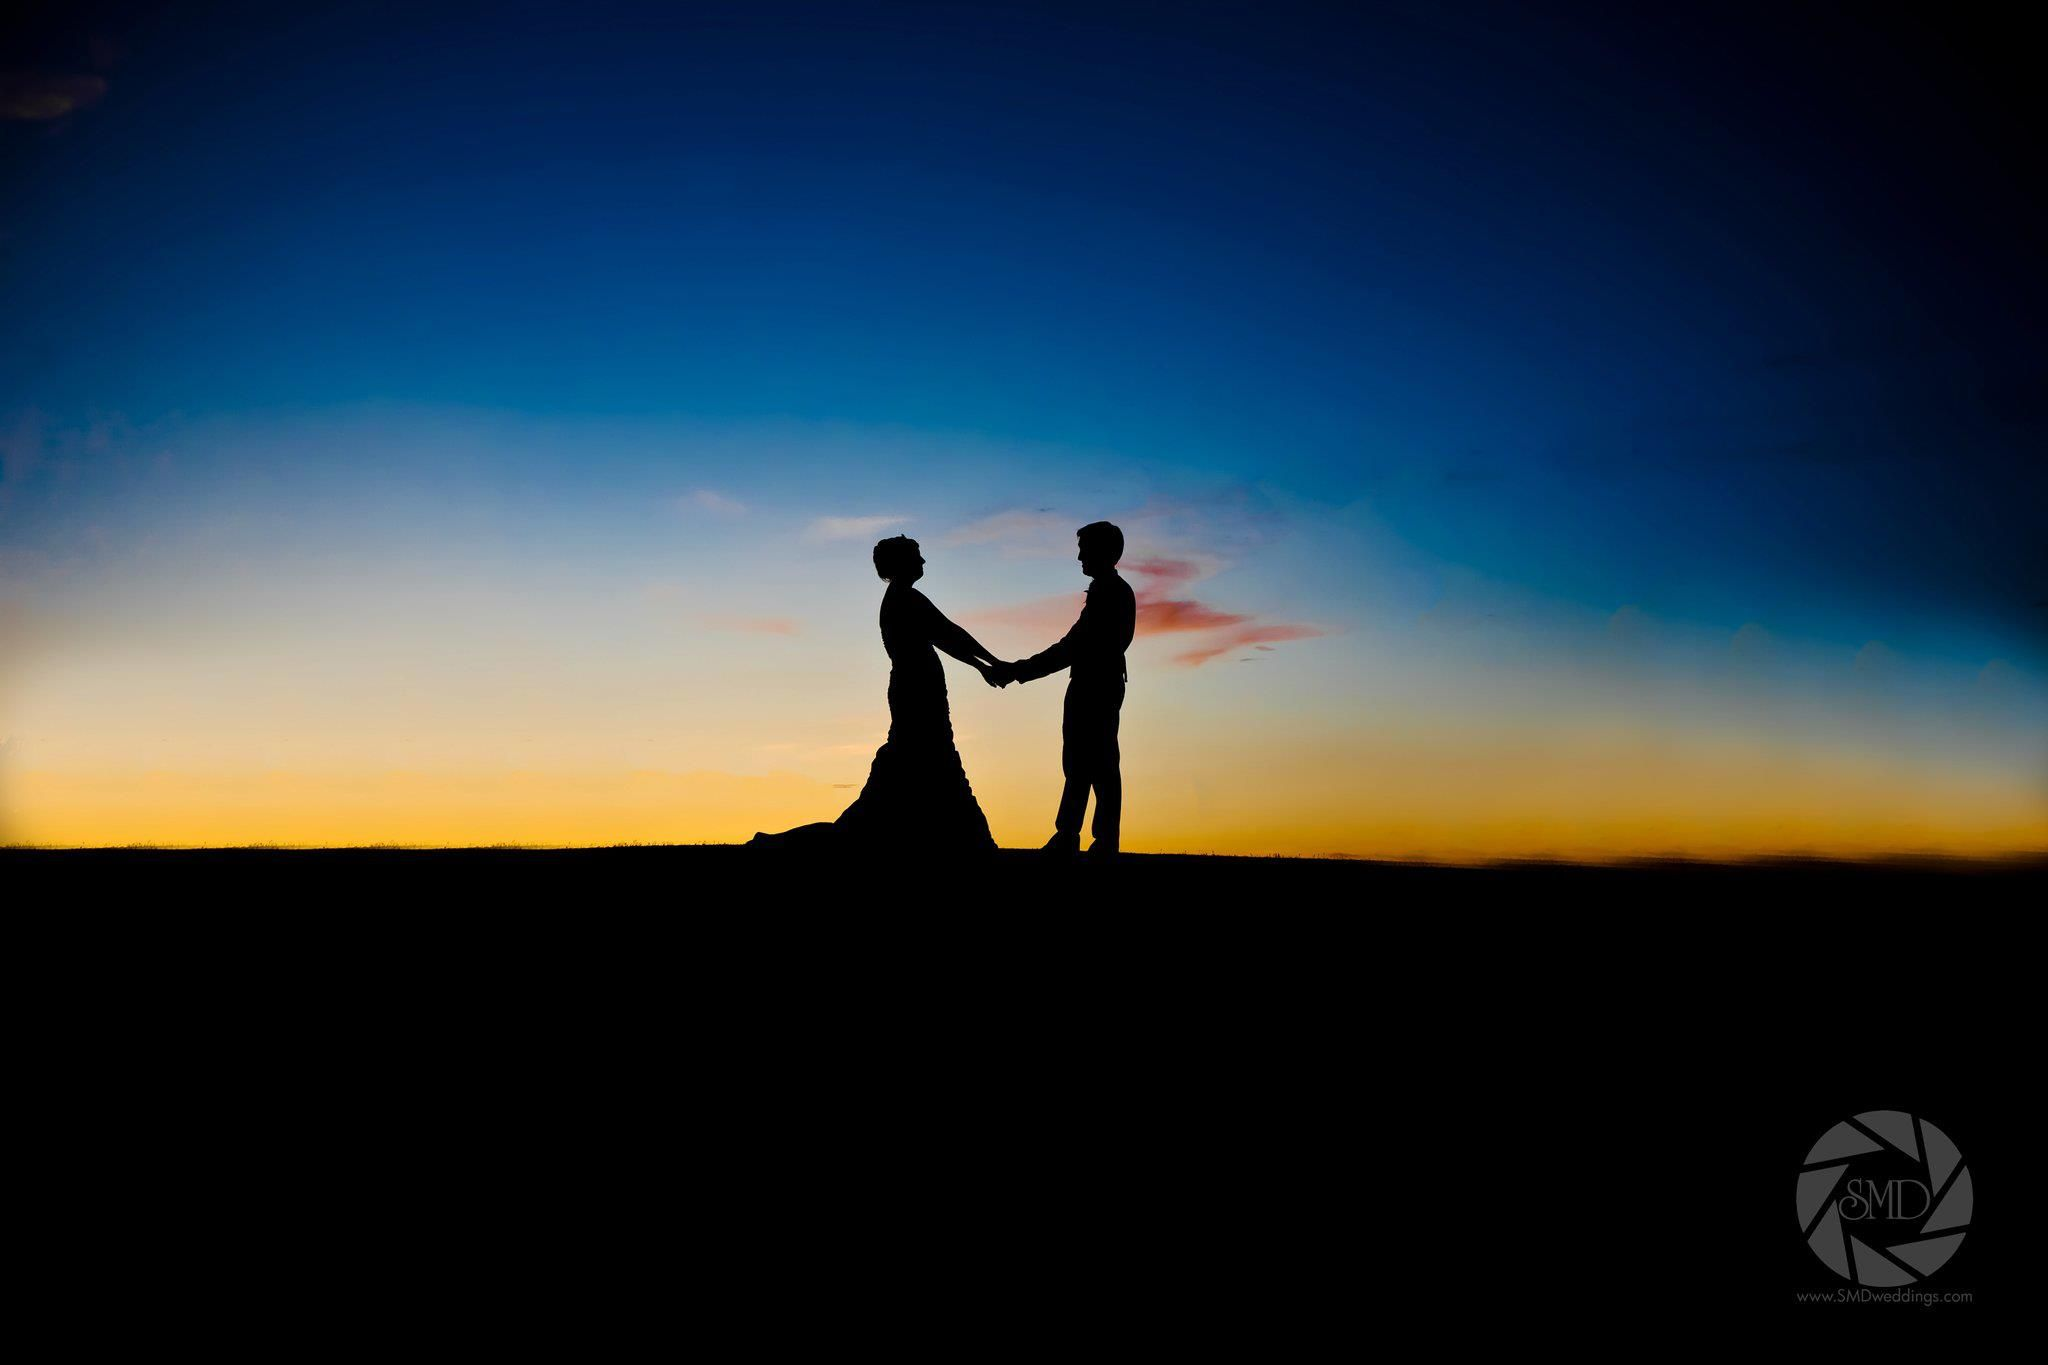 edwardian couple holding hands images - Google Search | eBook ... for Couple Holding Hands Silhouette Sunset  177nar